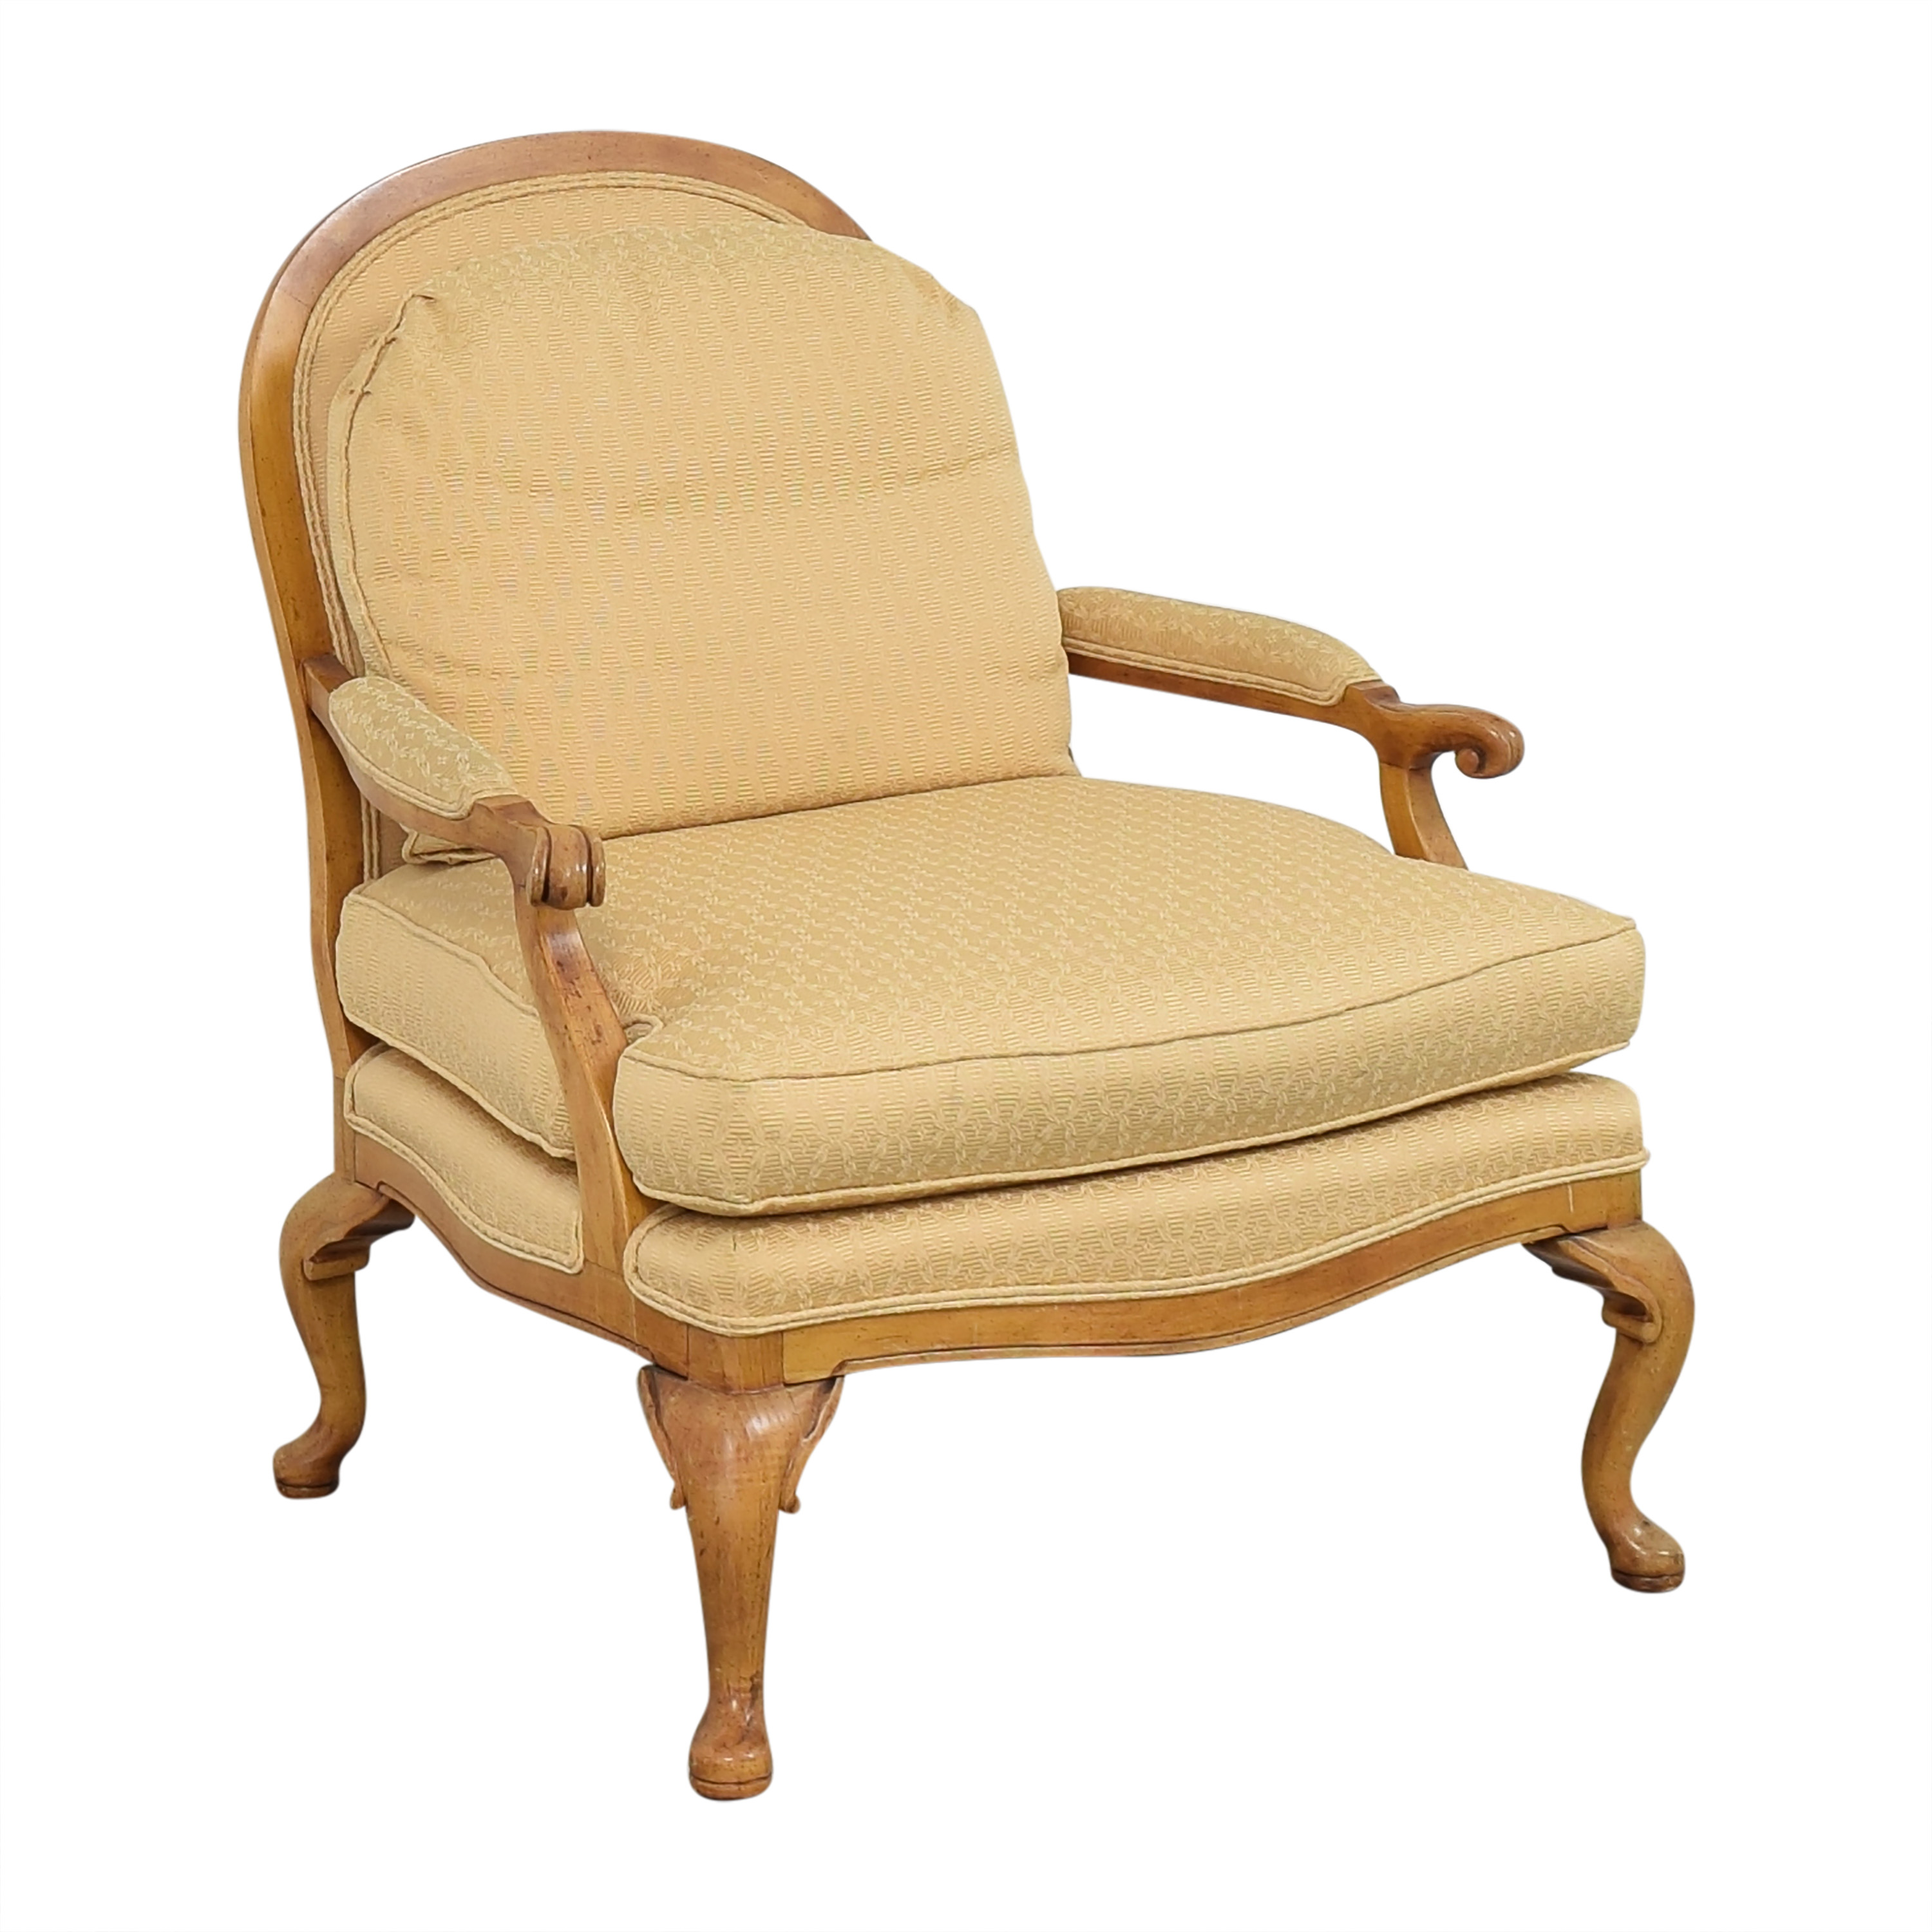 shop Highland House Accent Fauteuil Chair Highland House Furniture Accent Chairs